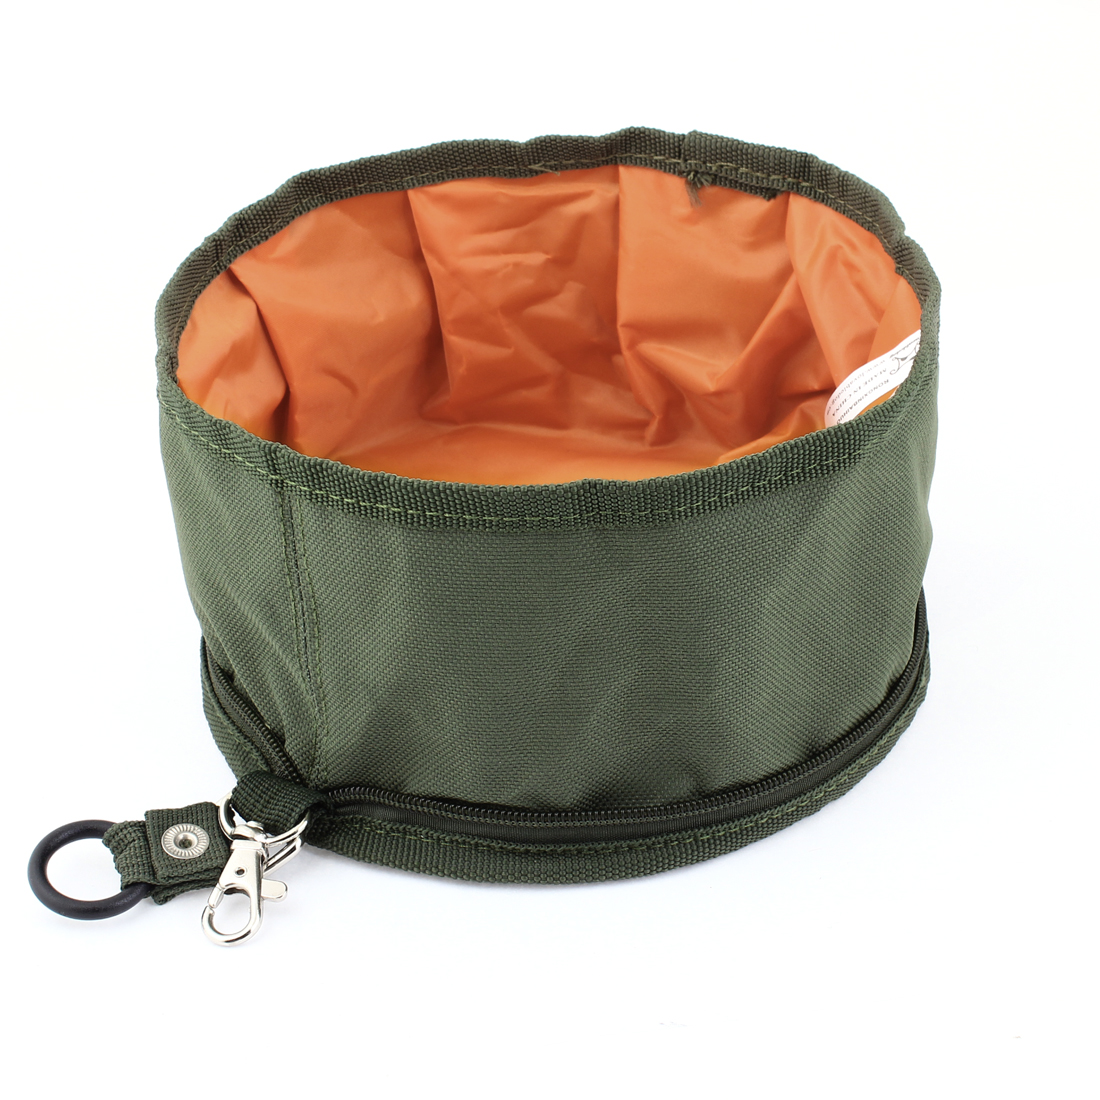 Pet Dog Cat Round Shaped Travel Foldable Zippered Protable Food Bowl Army Green Orange